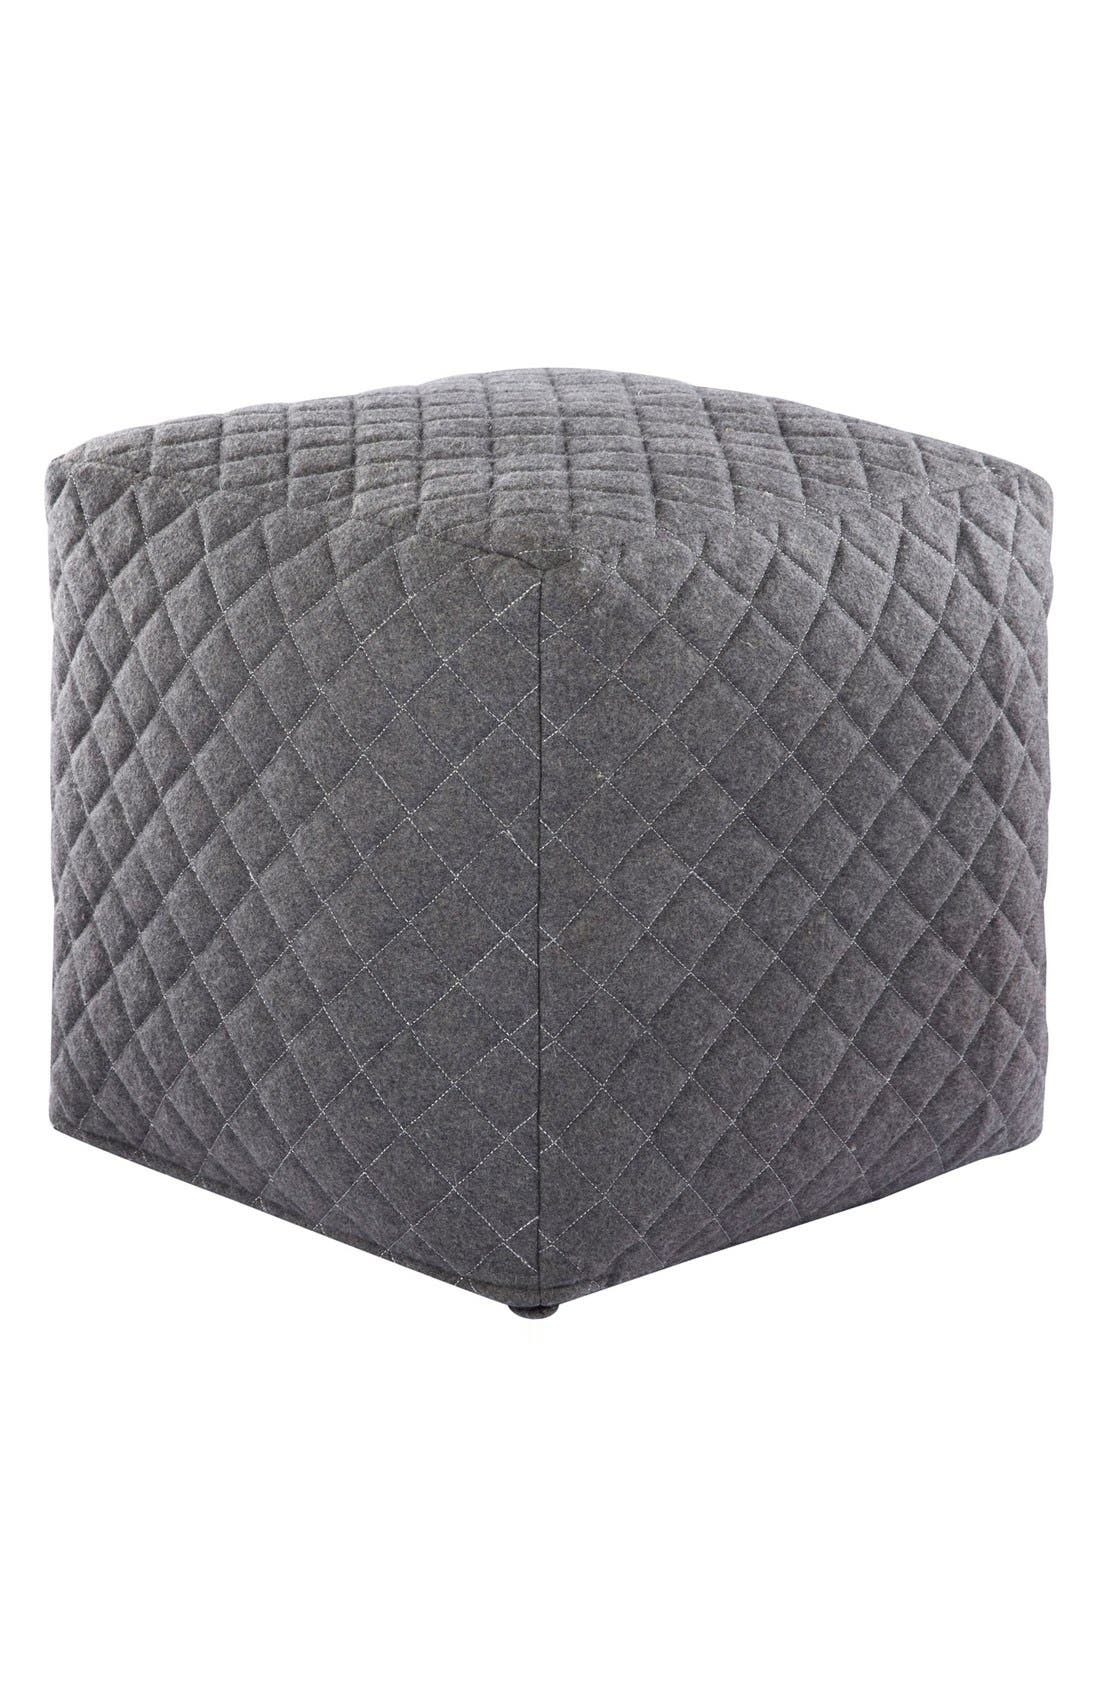 'Nikki Chu Ultra' Pouf,                             Main thumbnail 1, color,                             Grey